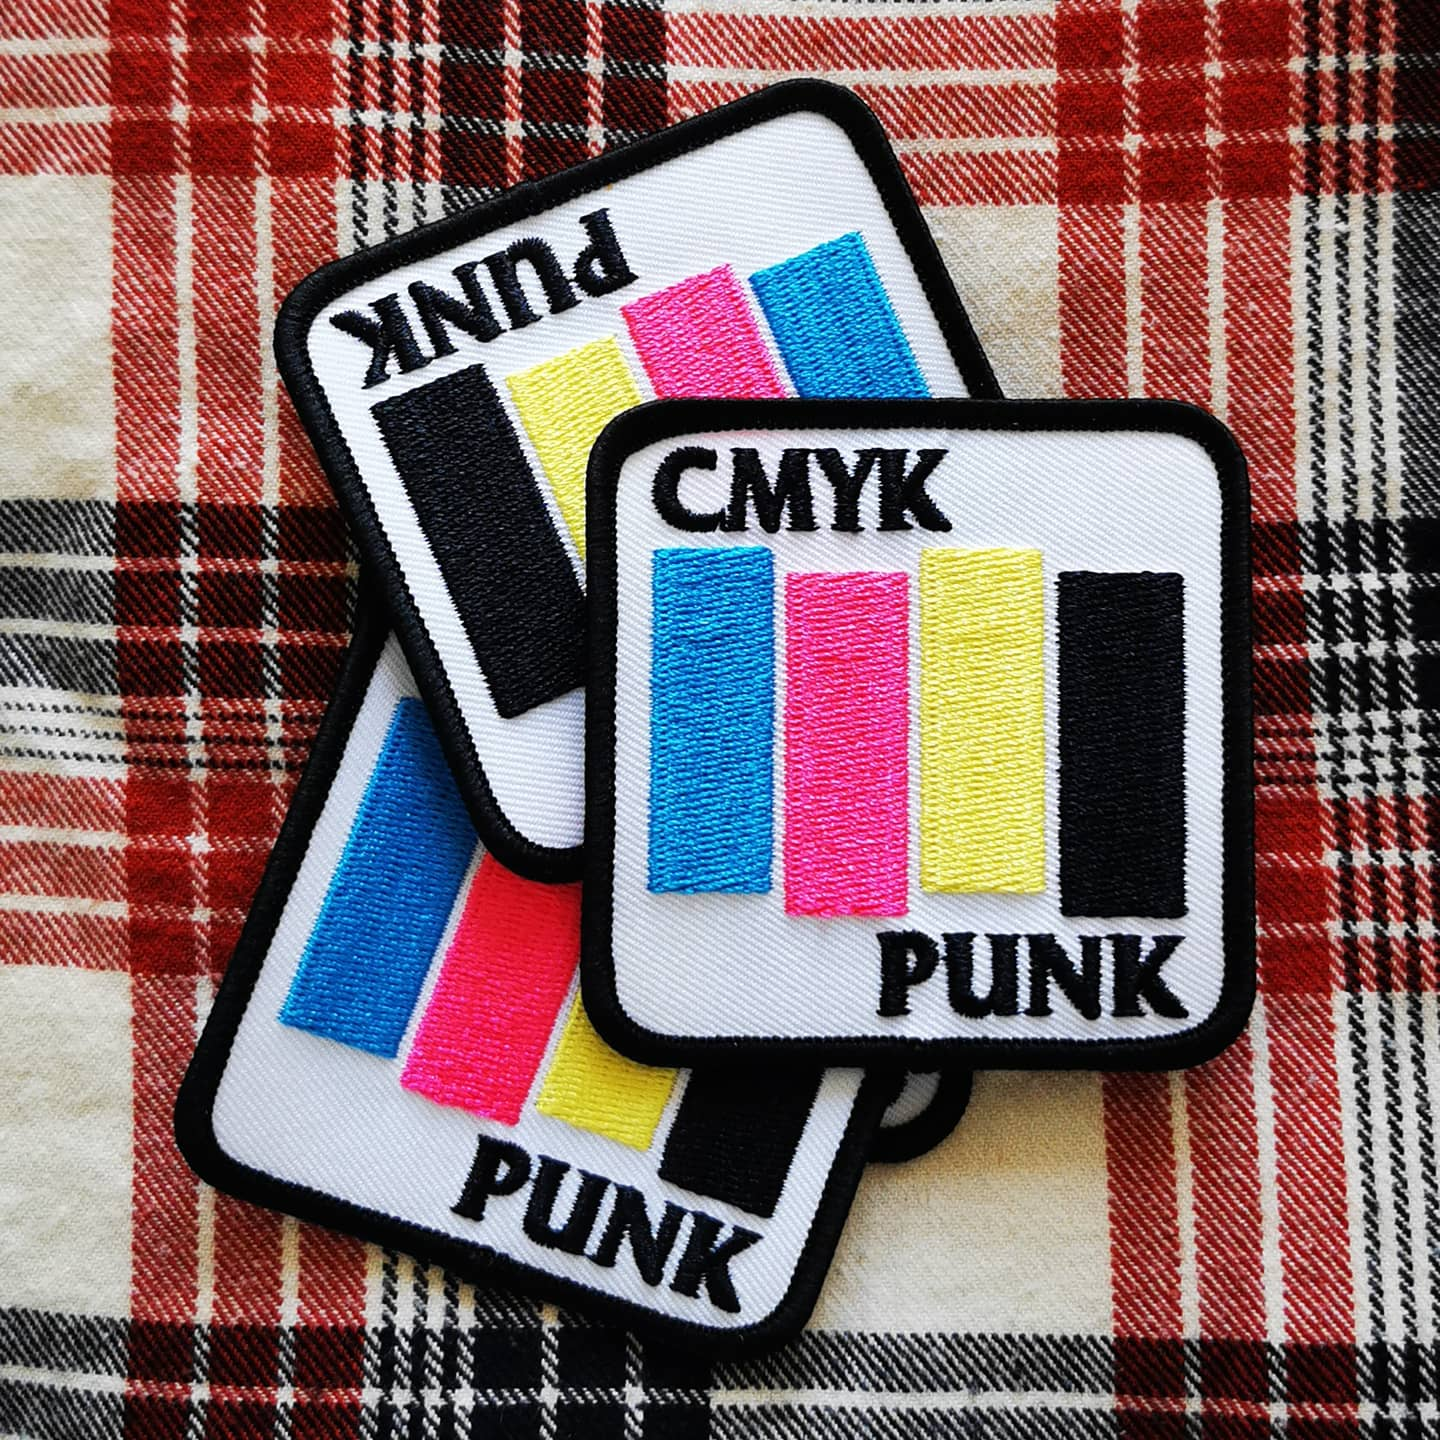 Gzy Ex Silesia - CMYK PUNK - Embroidered patch